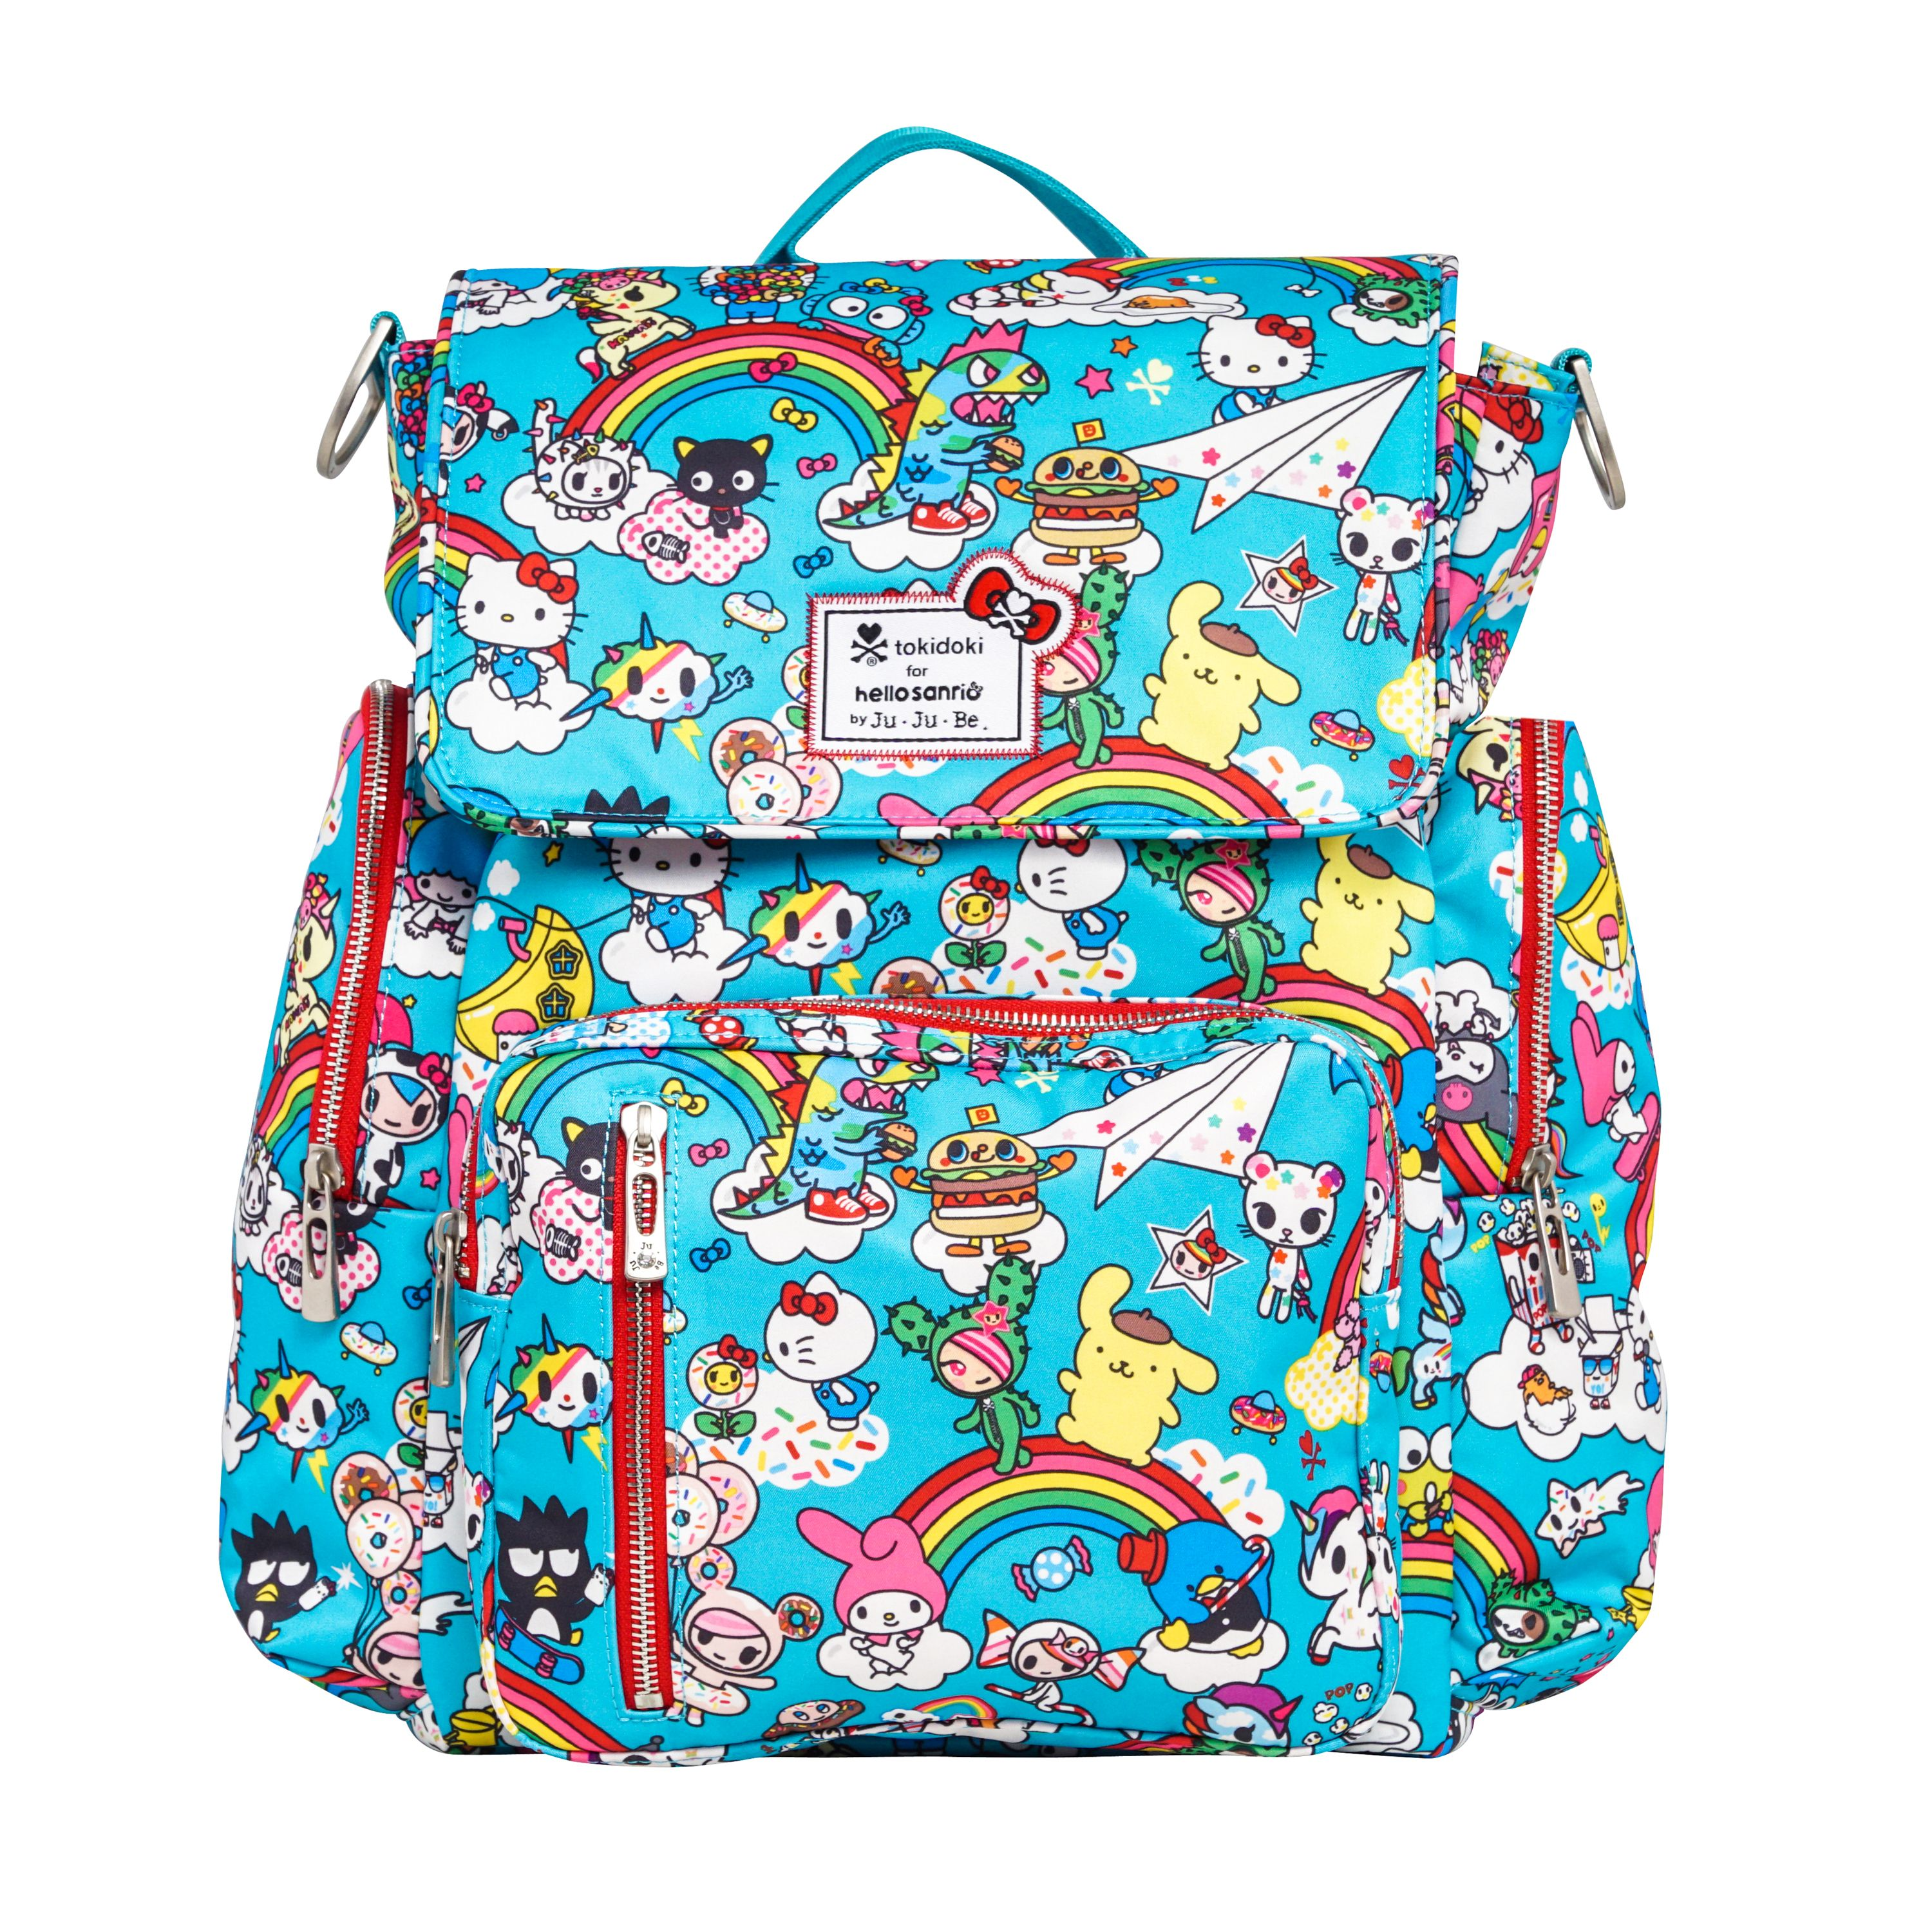 654c0f06891a New Tokidoki + Sanrio bags   an explosion of pop culture awesomeness.  Rainbow Dreams Be Sporty. Rainbow Dreams Be Sporty Jujube Backpack